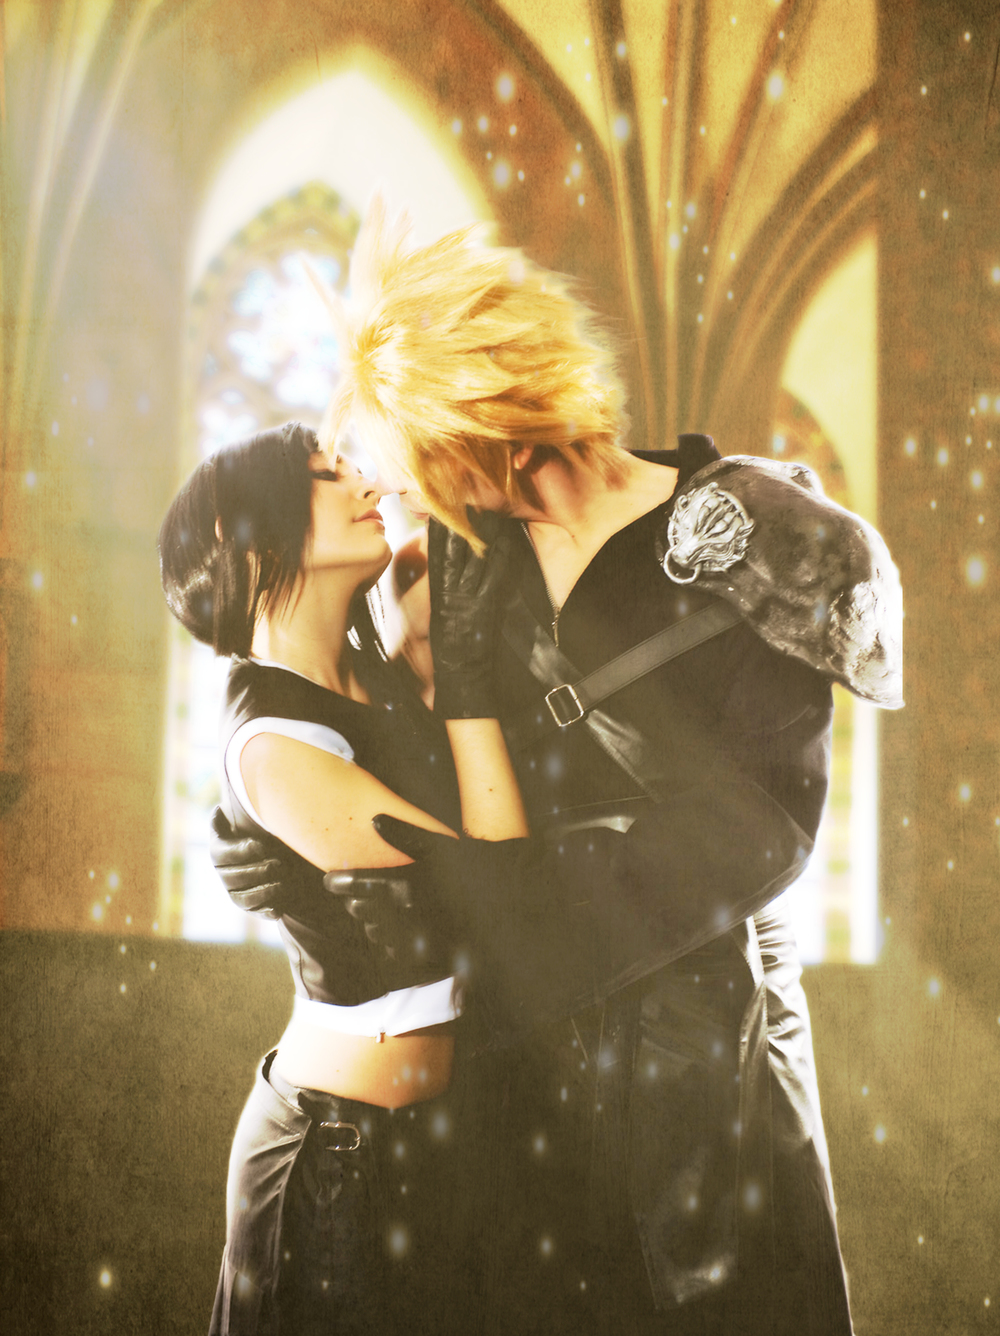 Squall is Cloud and Rinoa is Tifa | Photo by: Lars Van Drake | Editing by: ErinM31